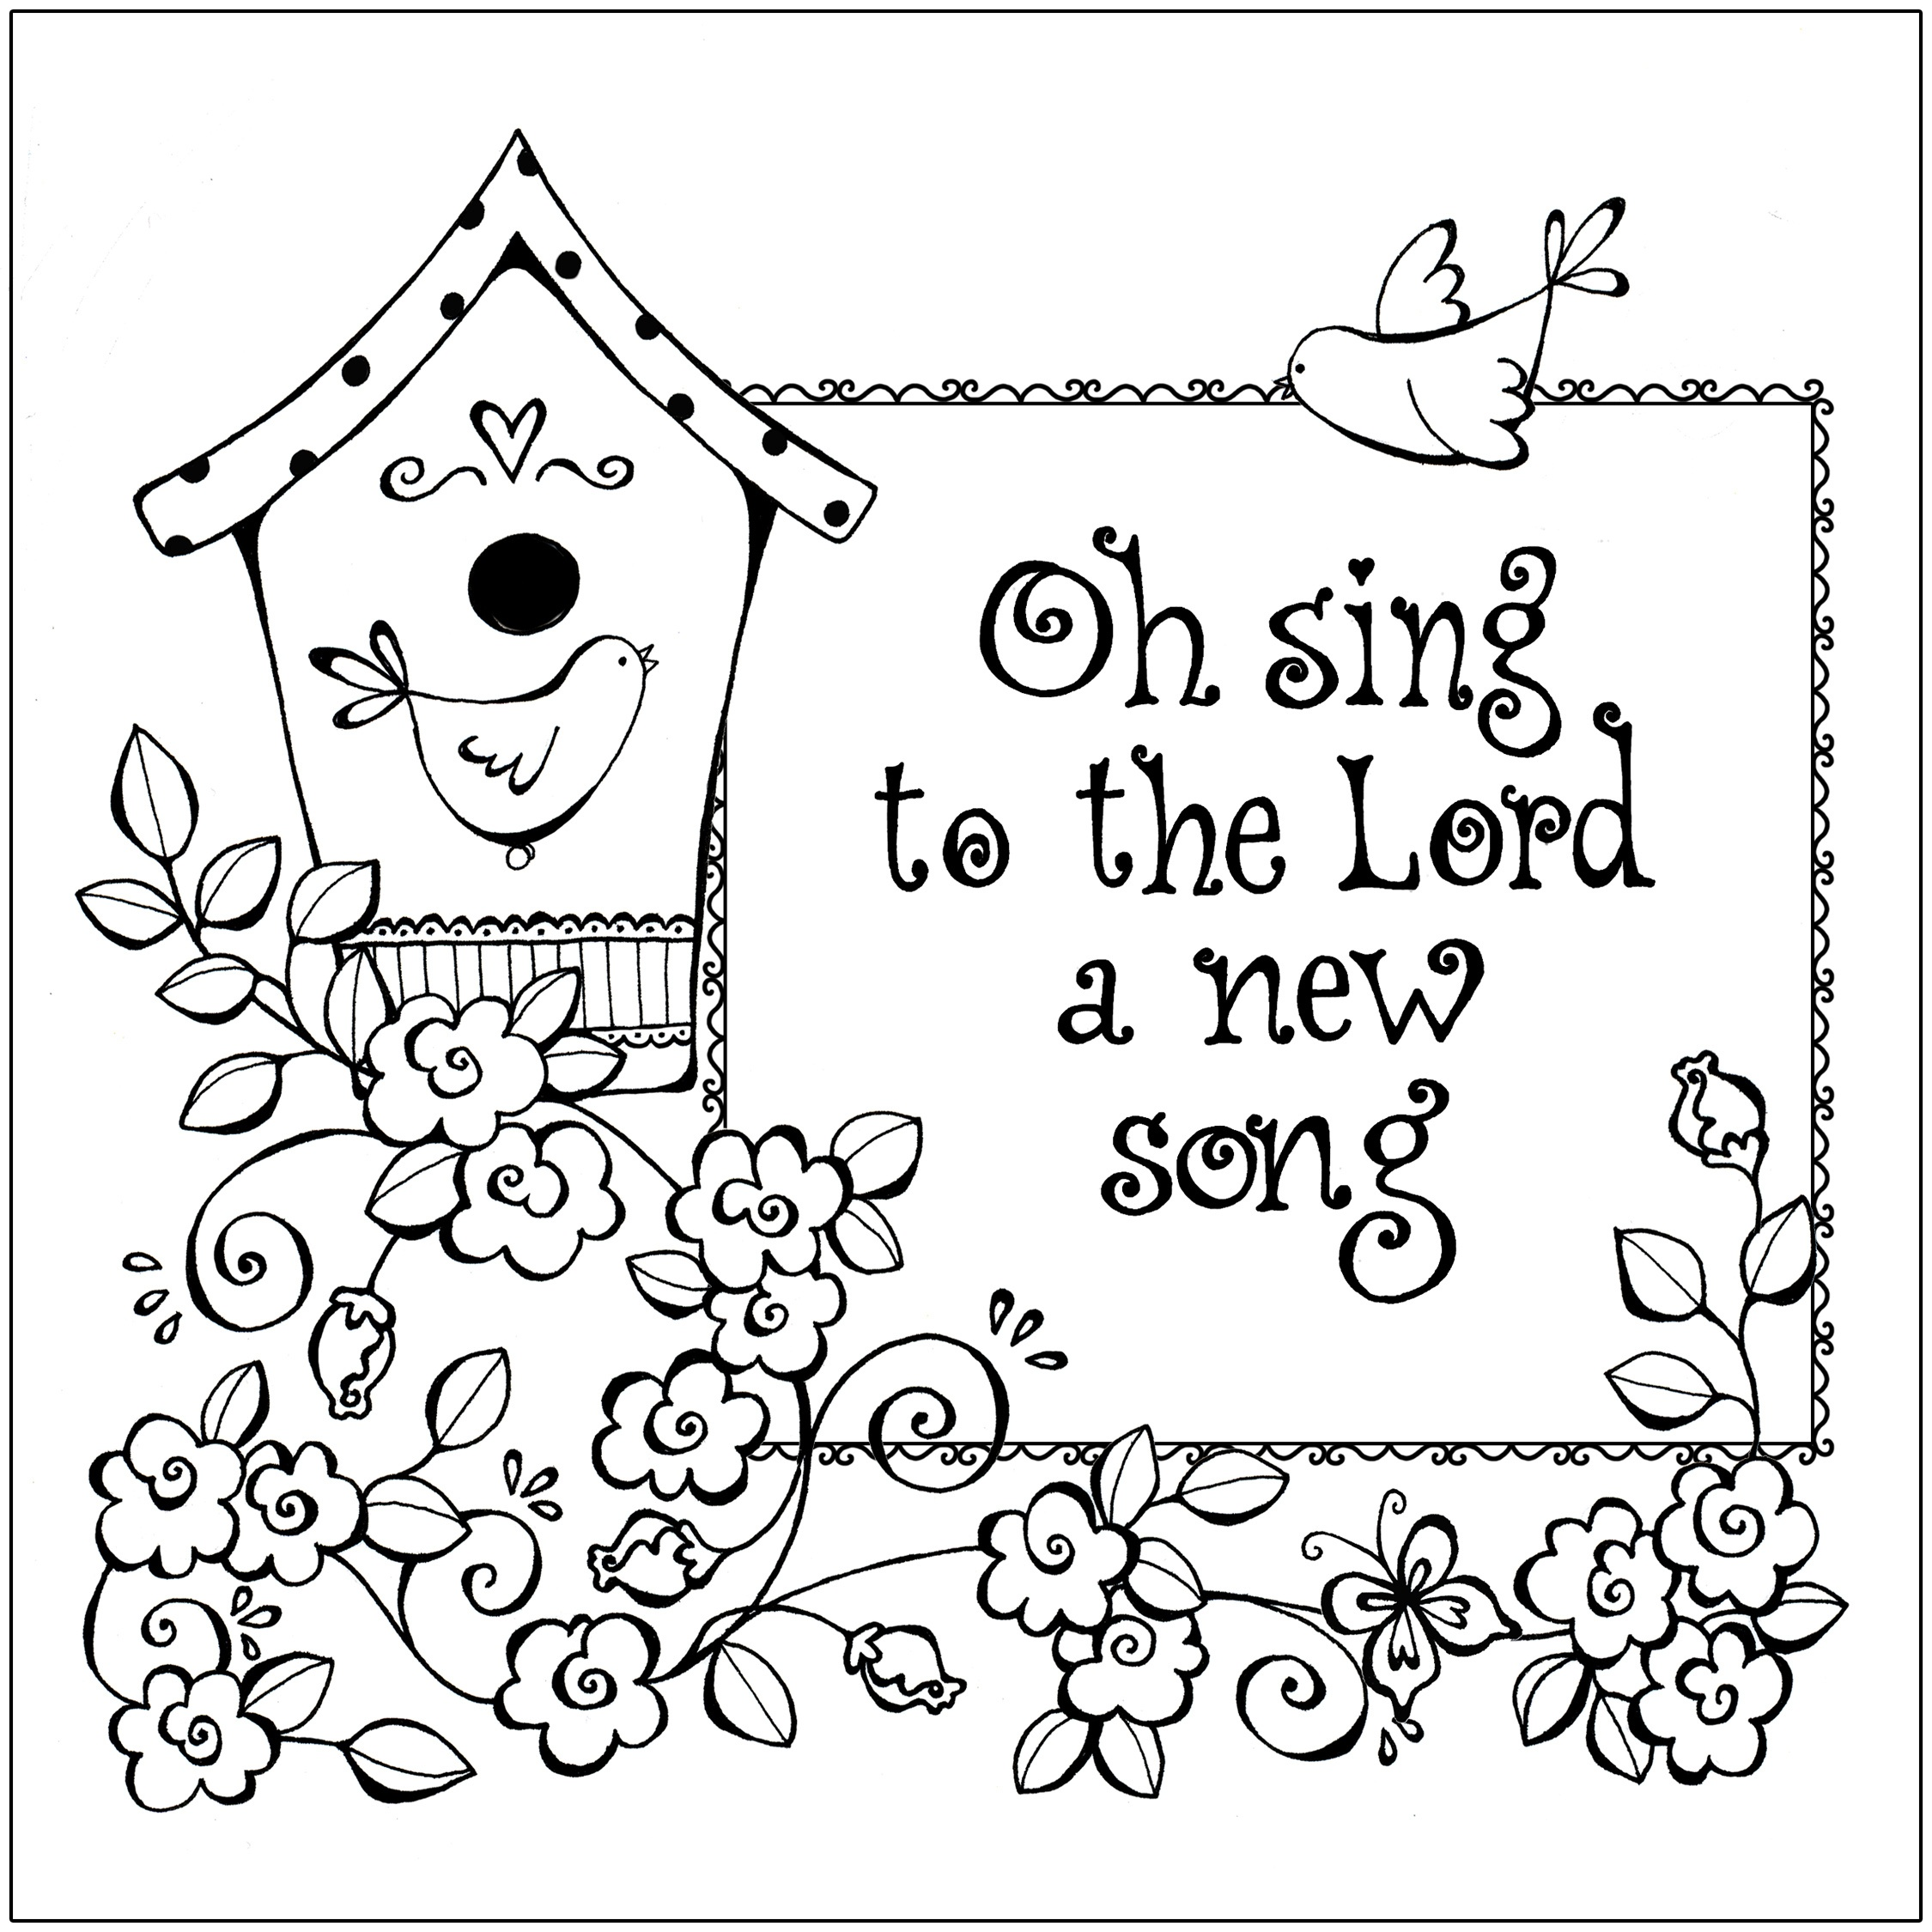 Free Printable Christian Coloring Pages For Kids - Best Coloring - Free Printable Christian Coloring Pages